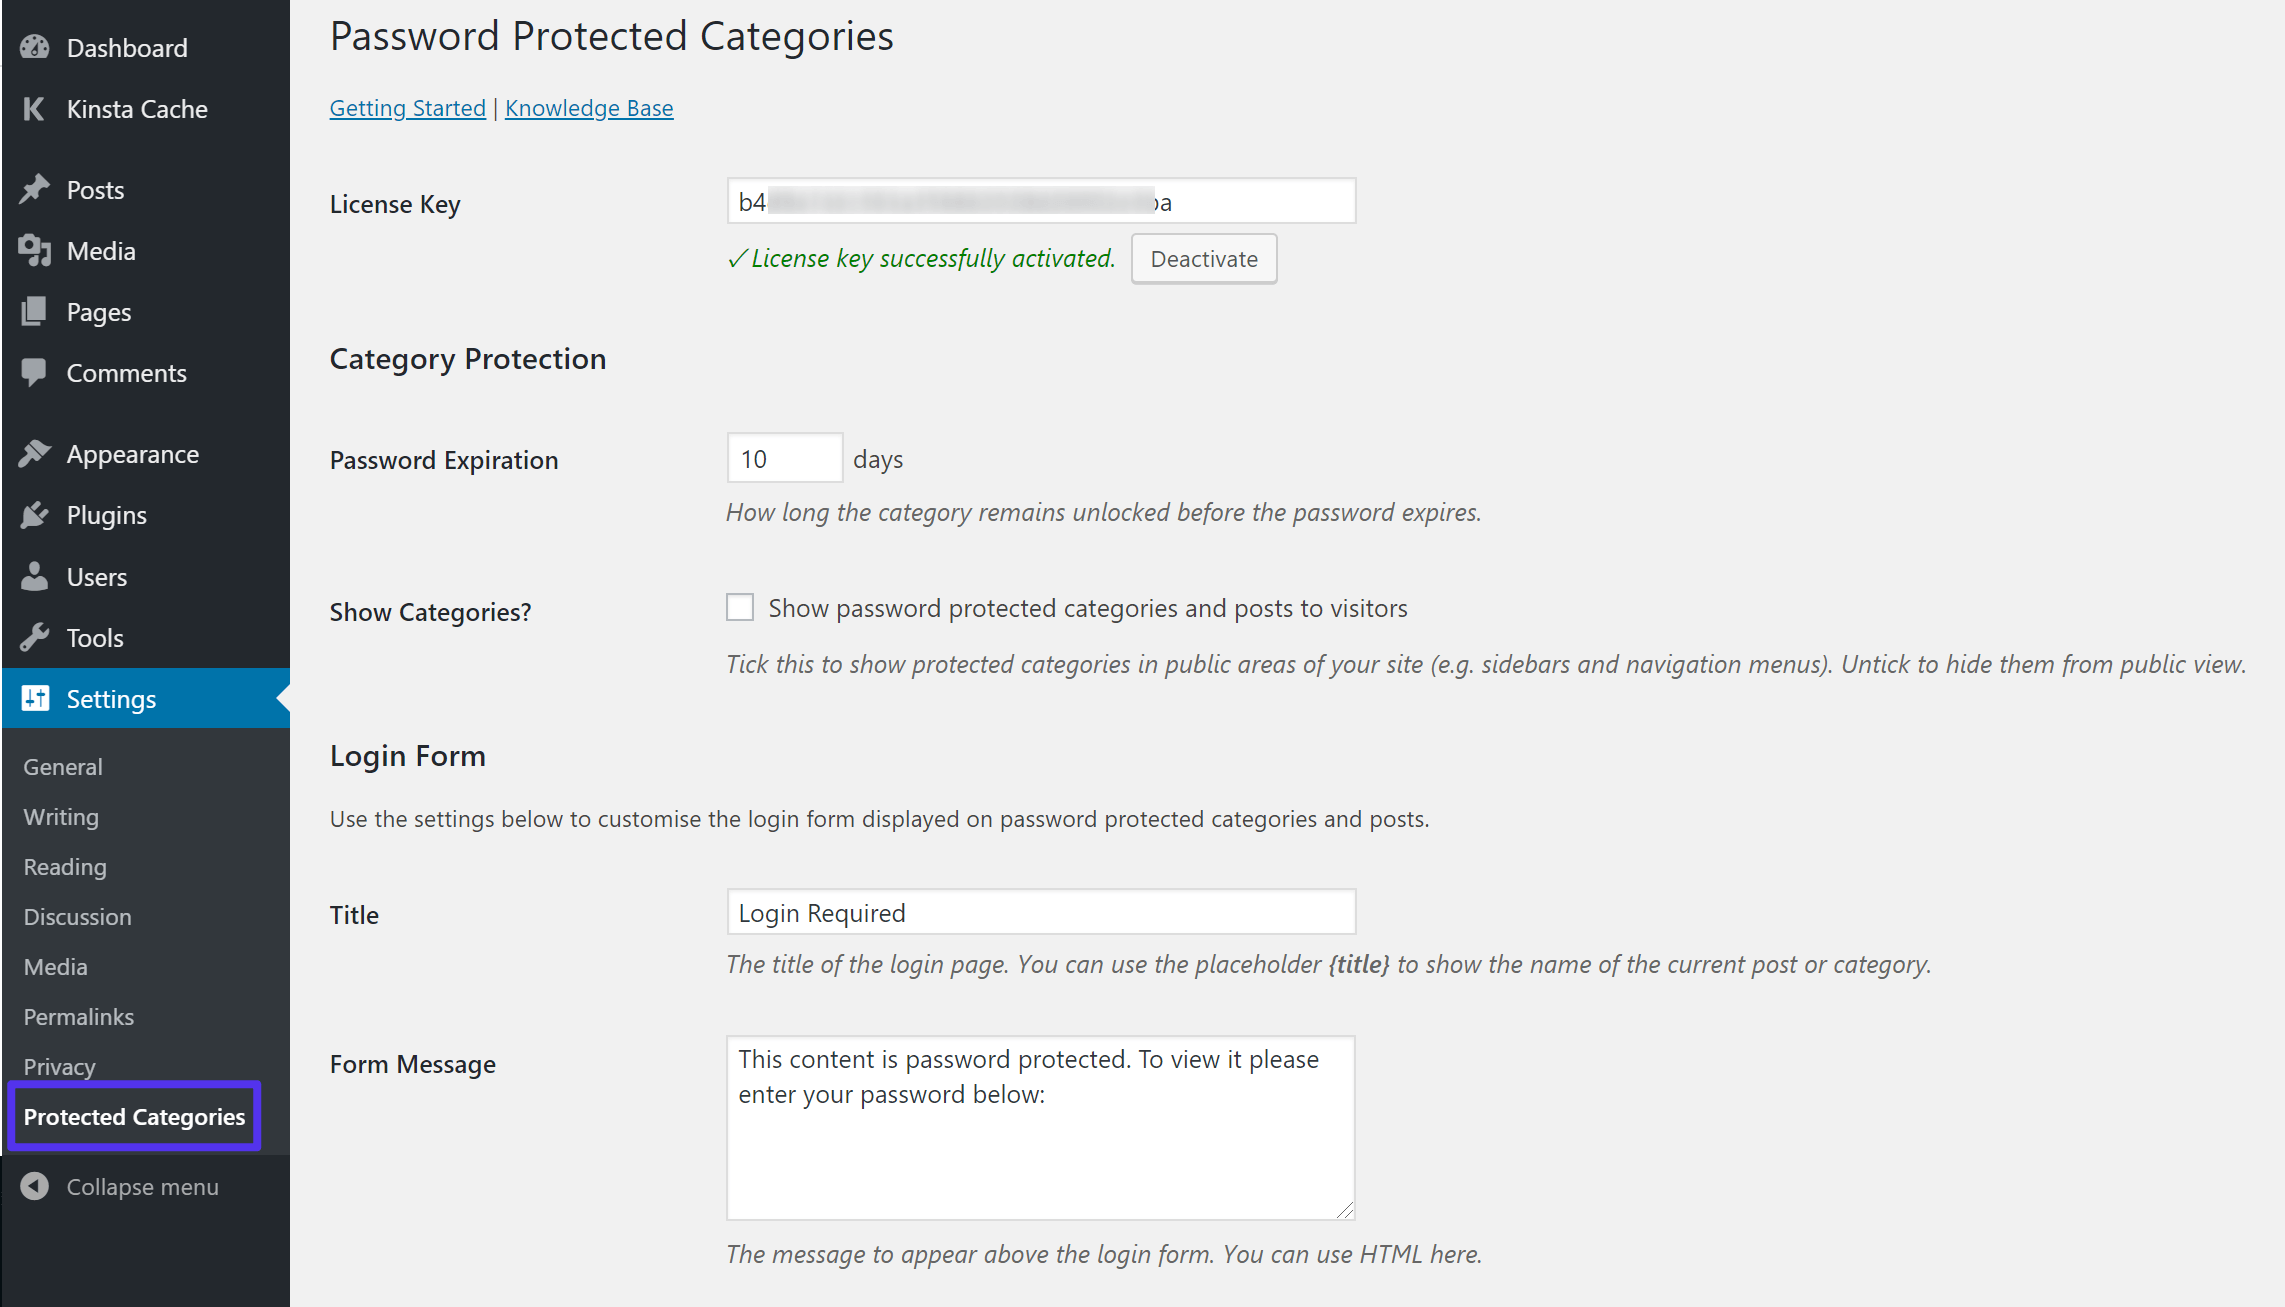 Password Protected Categoriesの設定